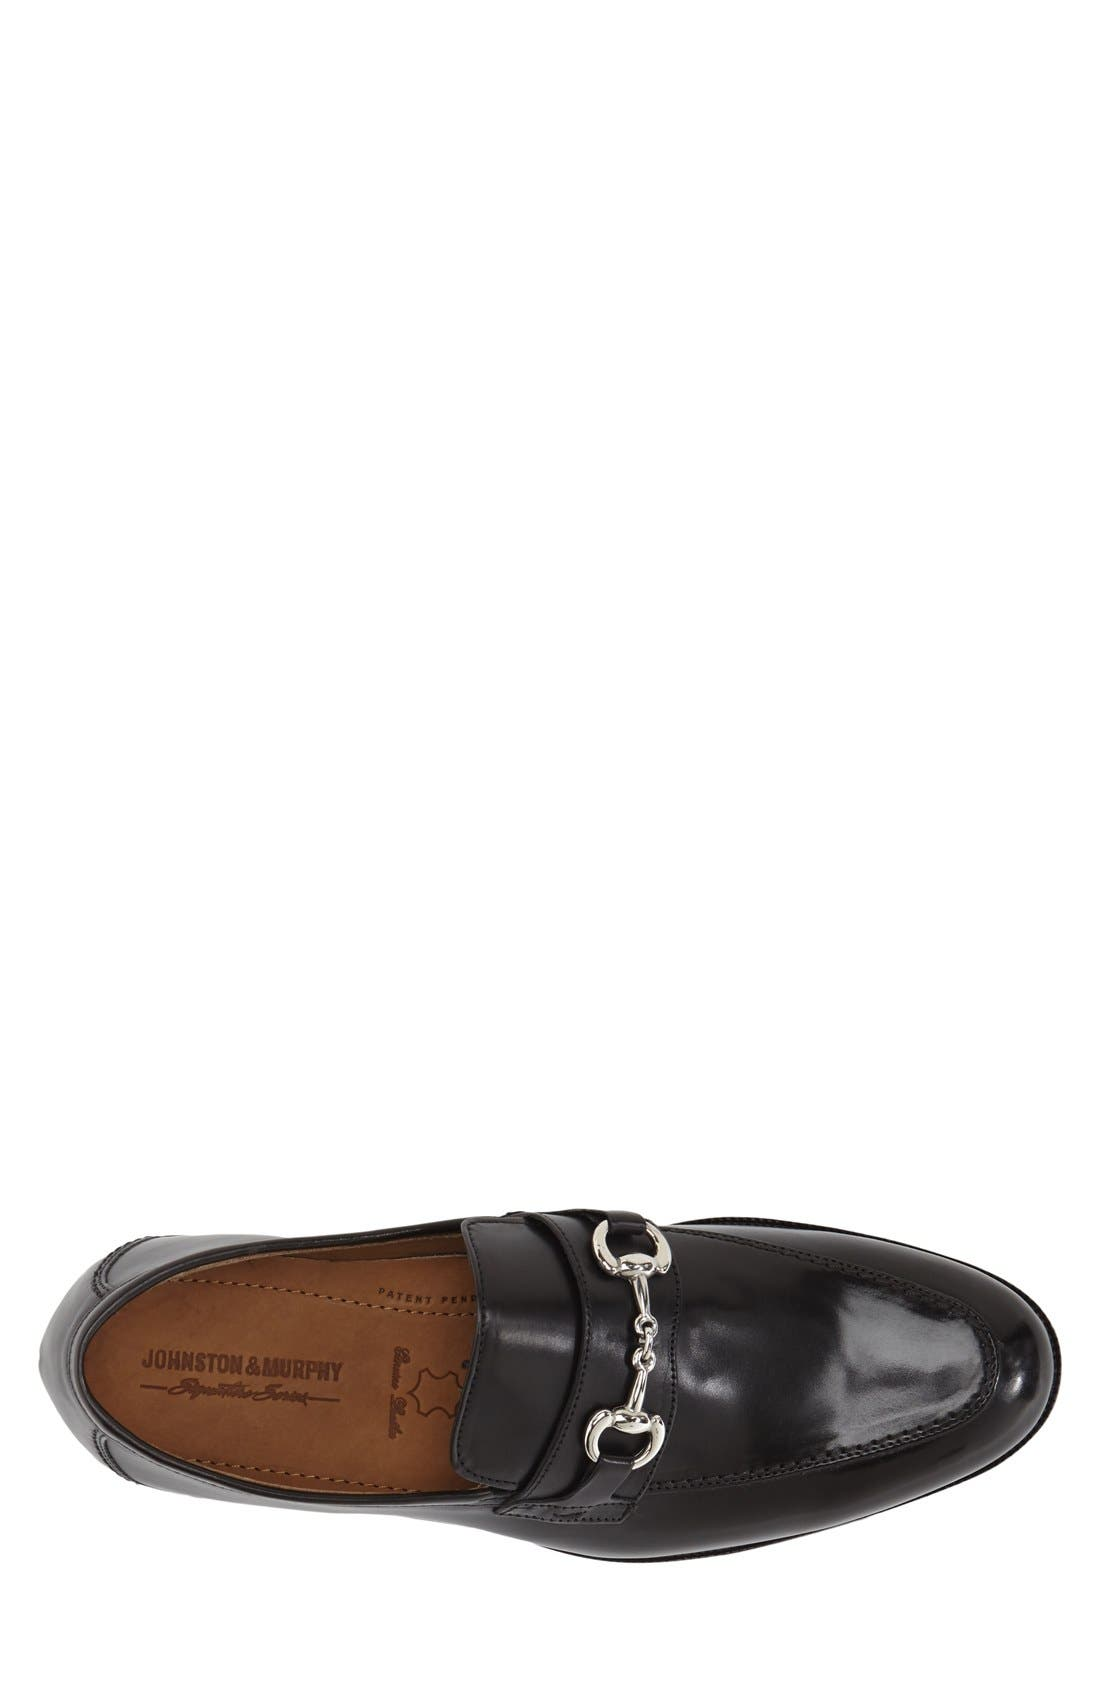 'Stratton' Bit Loafer,                             Alternate thumbnail 3, color,                             Black